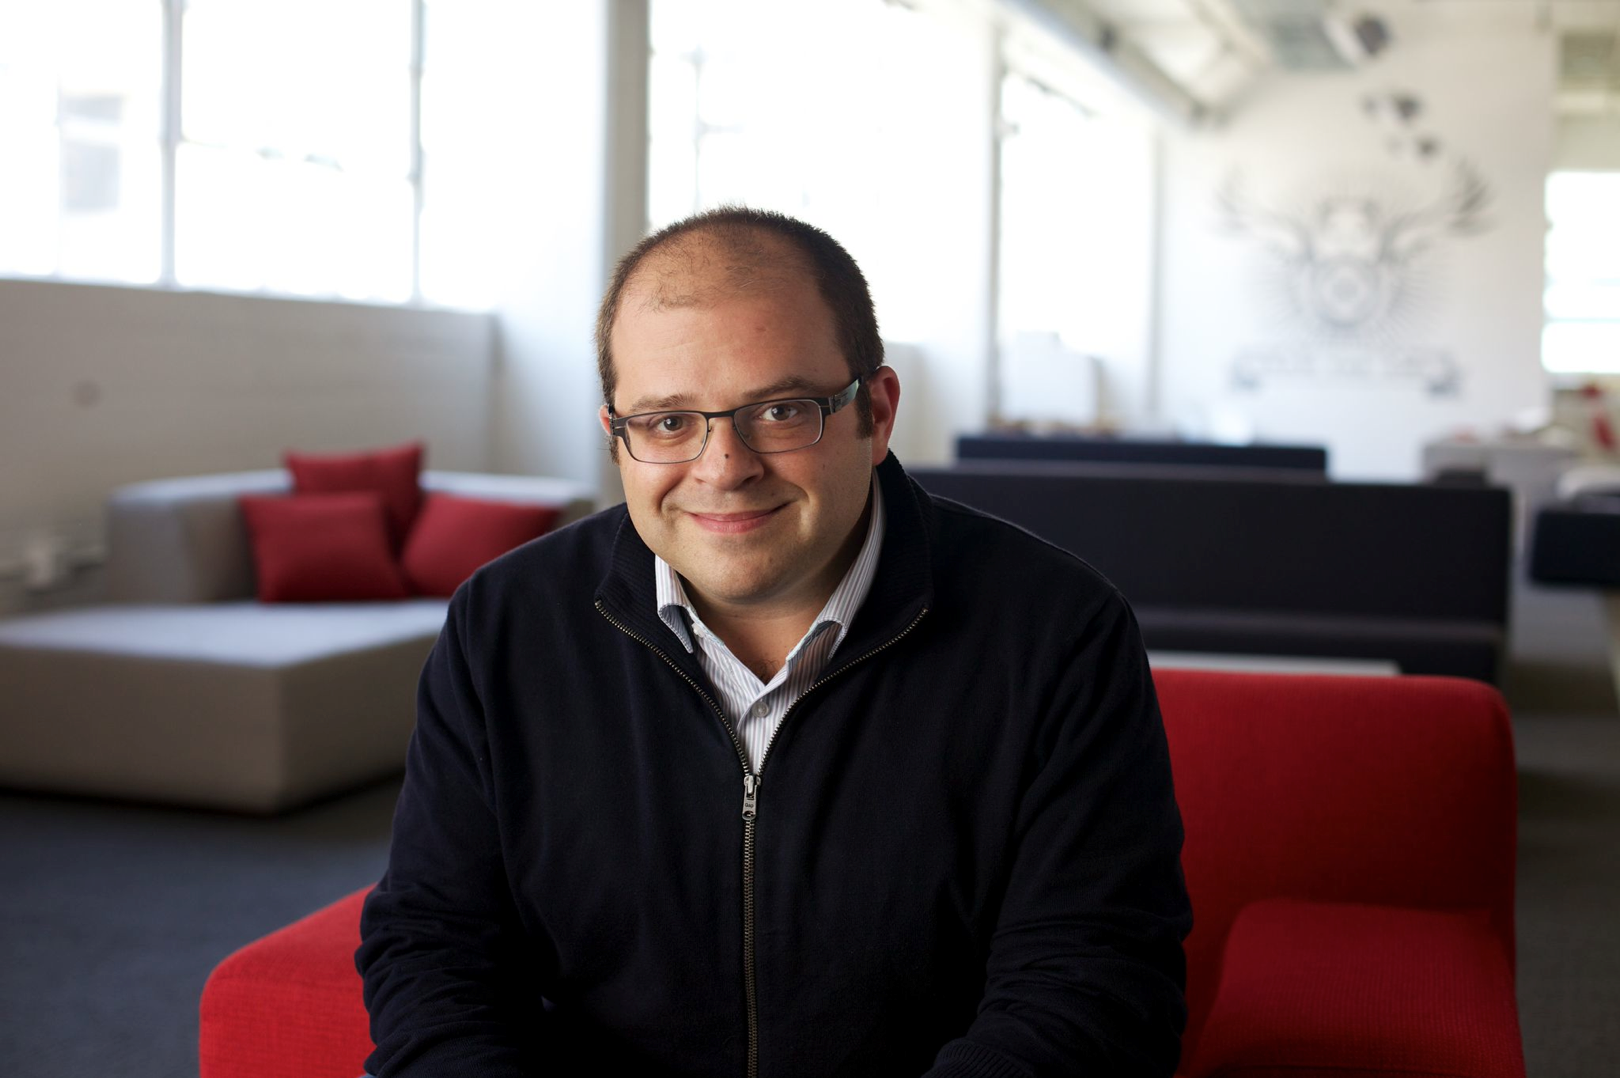 Jeff Lawson, co-founder and CEO, Twilio.